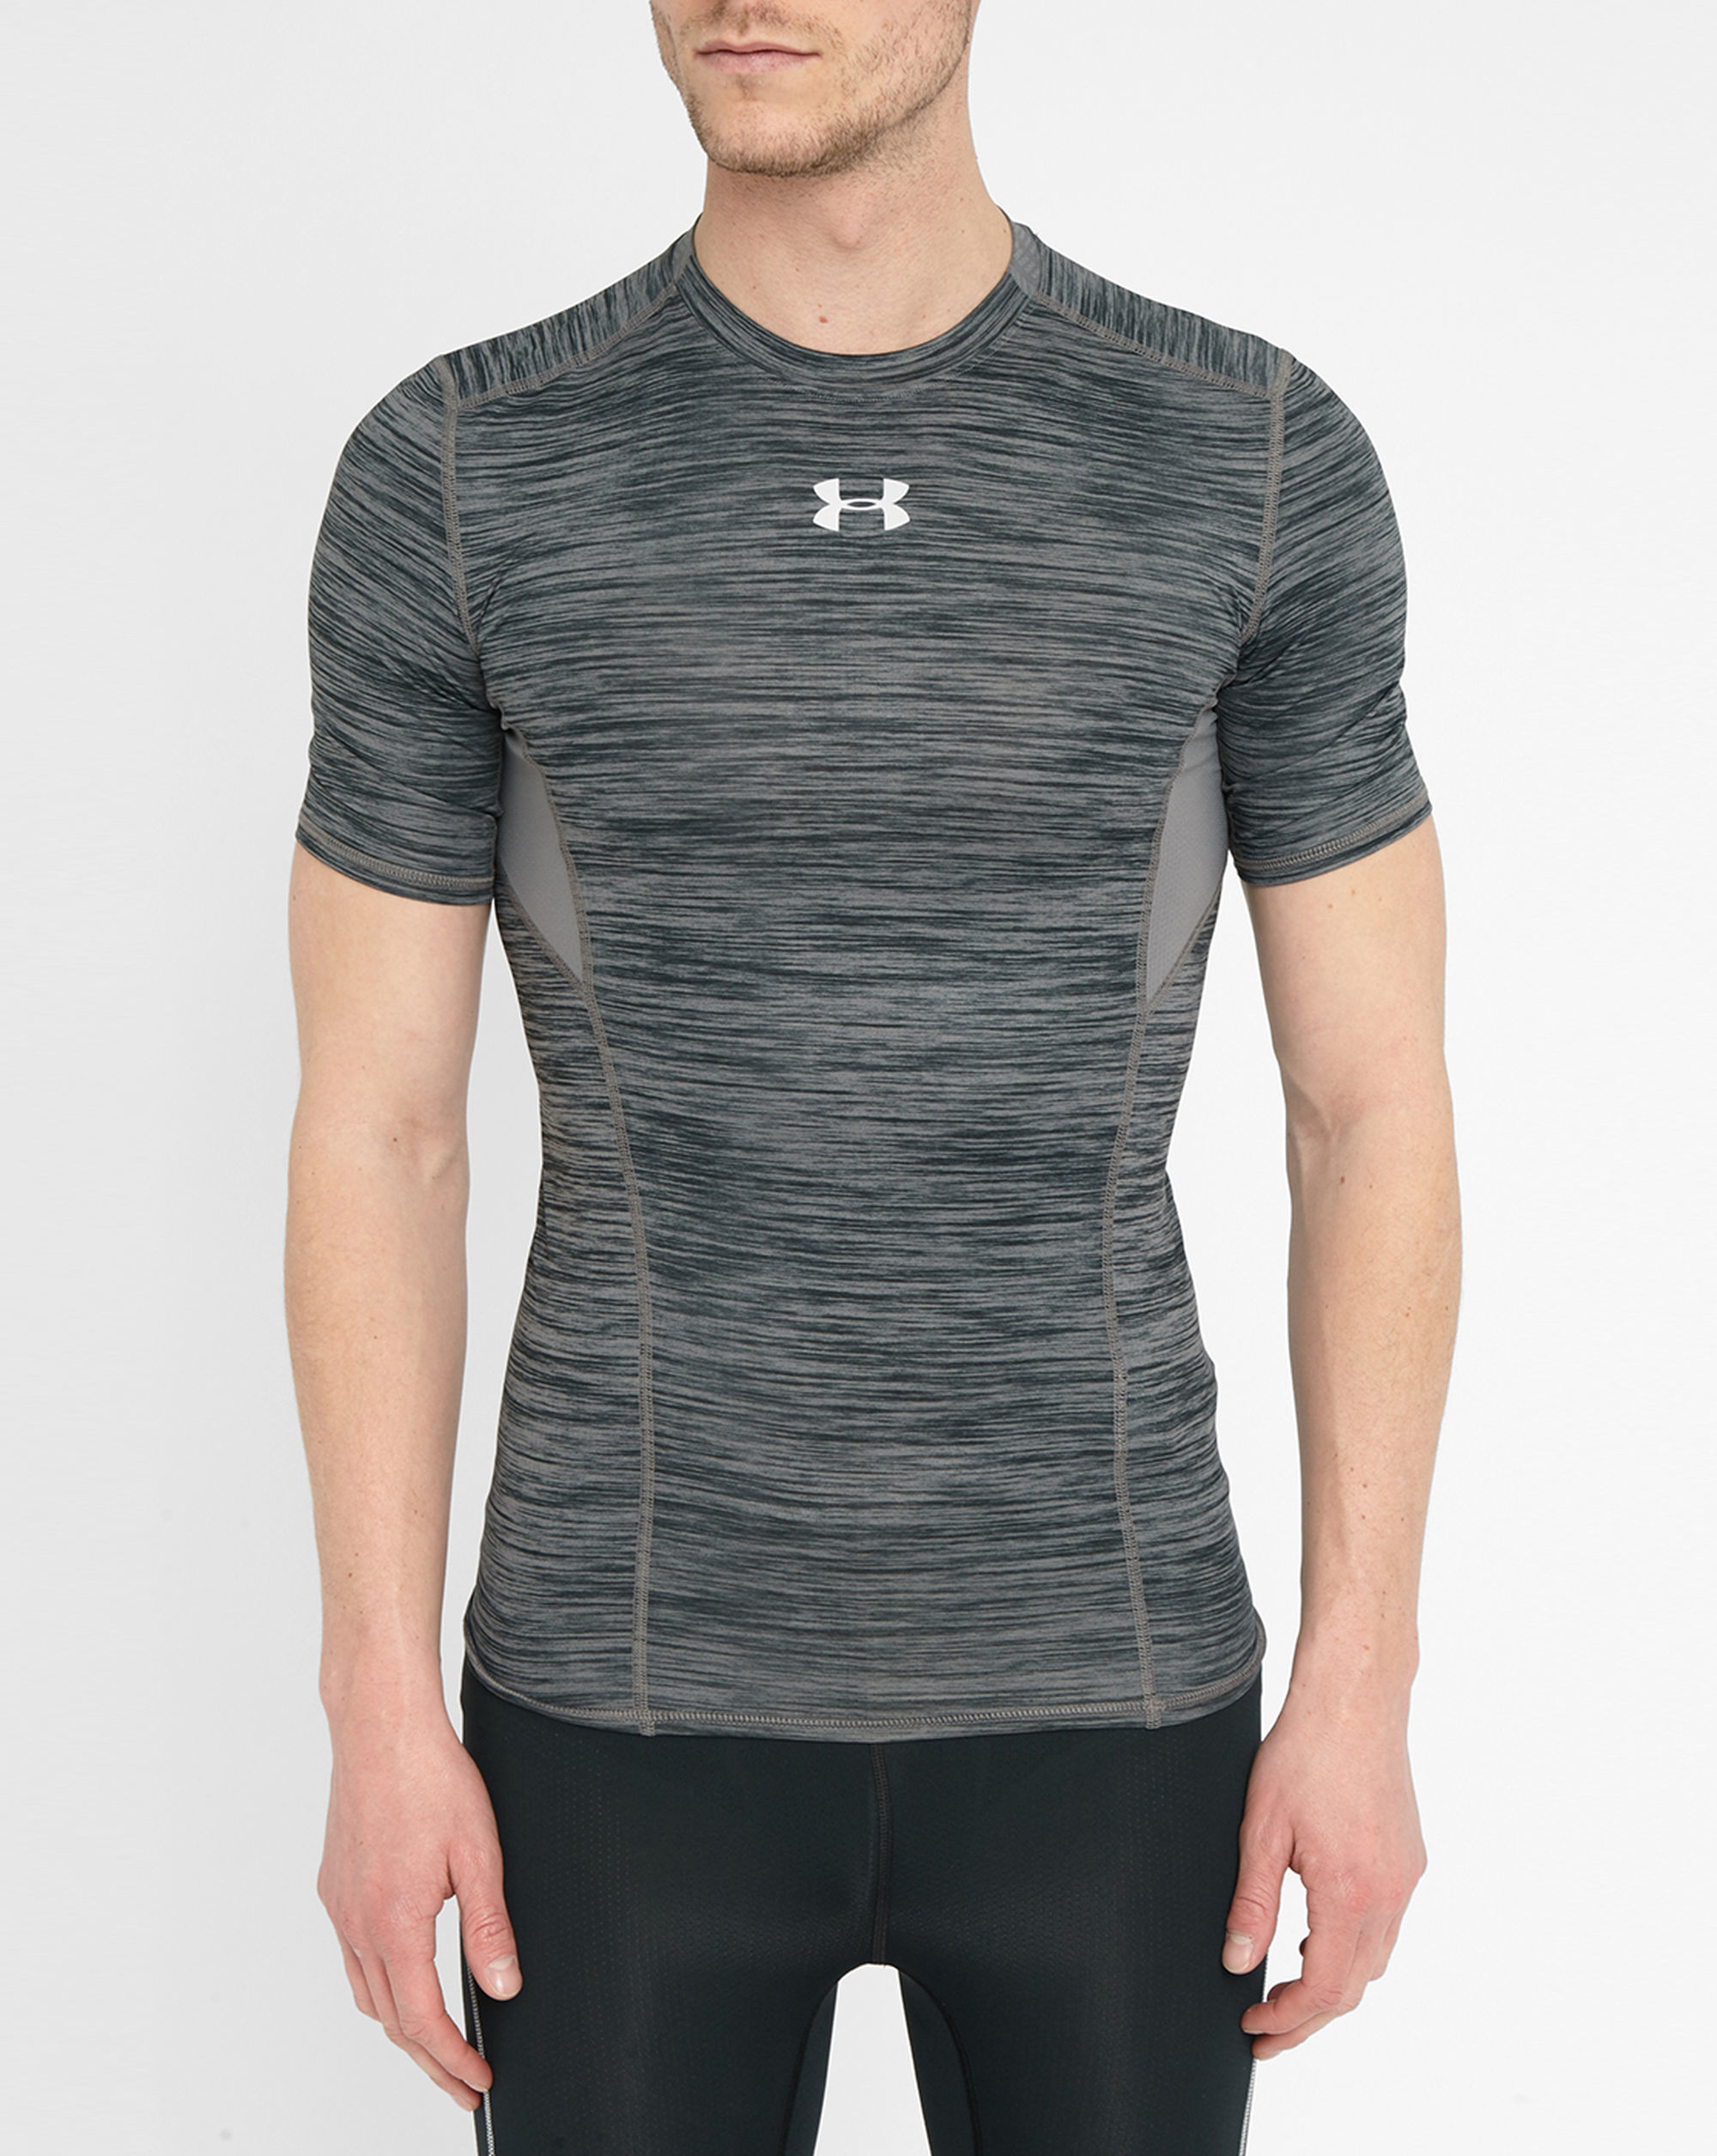 Under Armour Grey Coolswitch Compression T Shirt In Gray